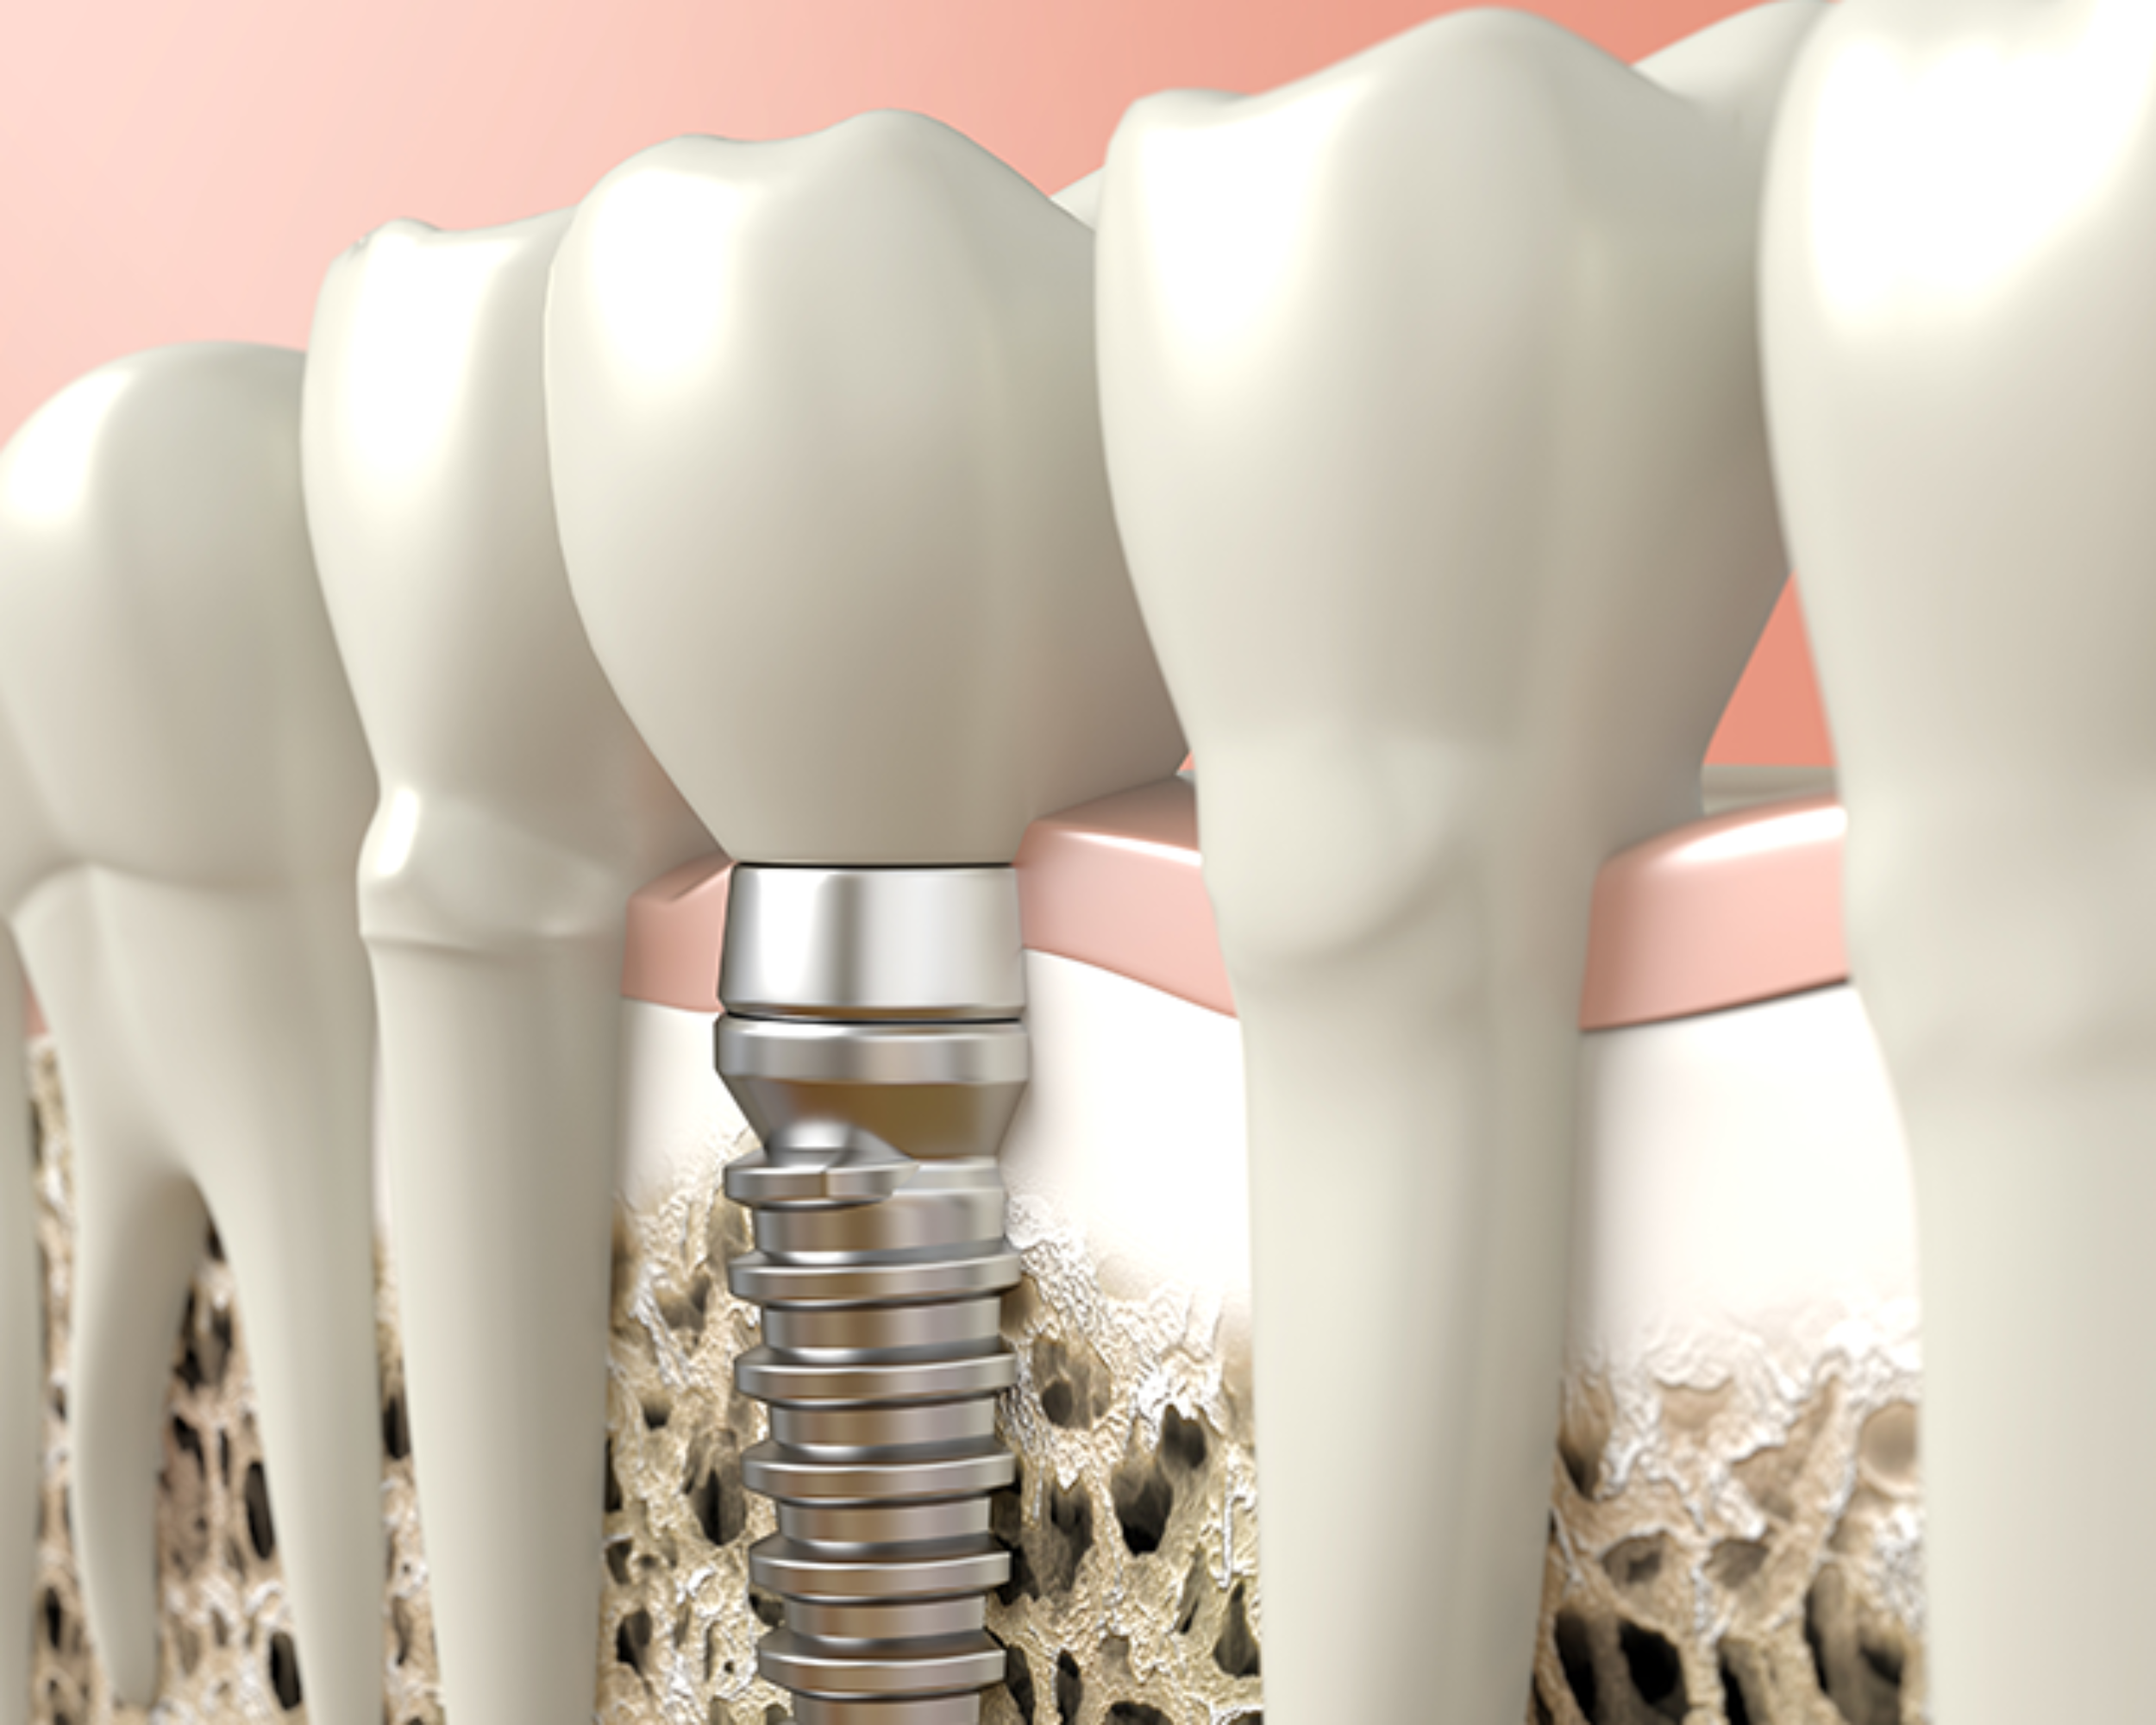 https://westbrookdentalcentre.com/wp-content/uploads/2017/10/Implant_Blog-2500x2000.png